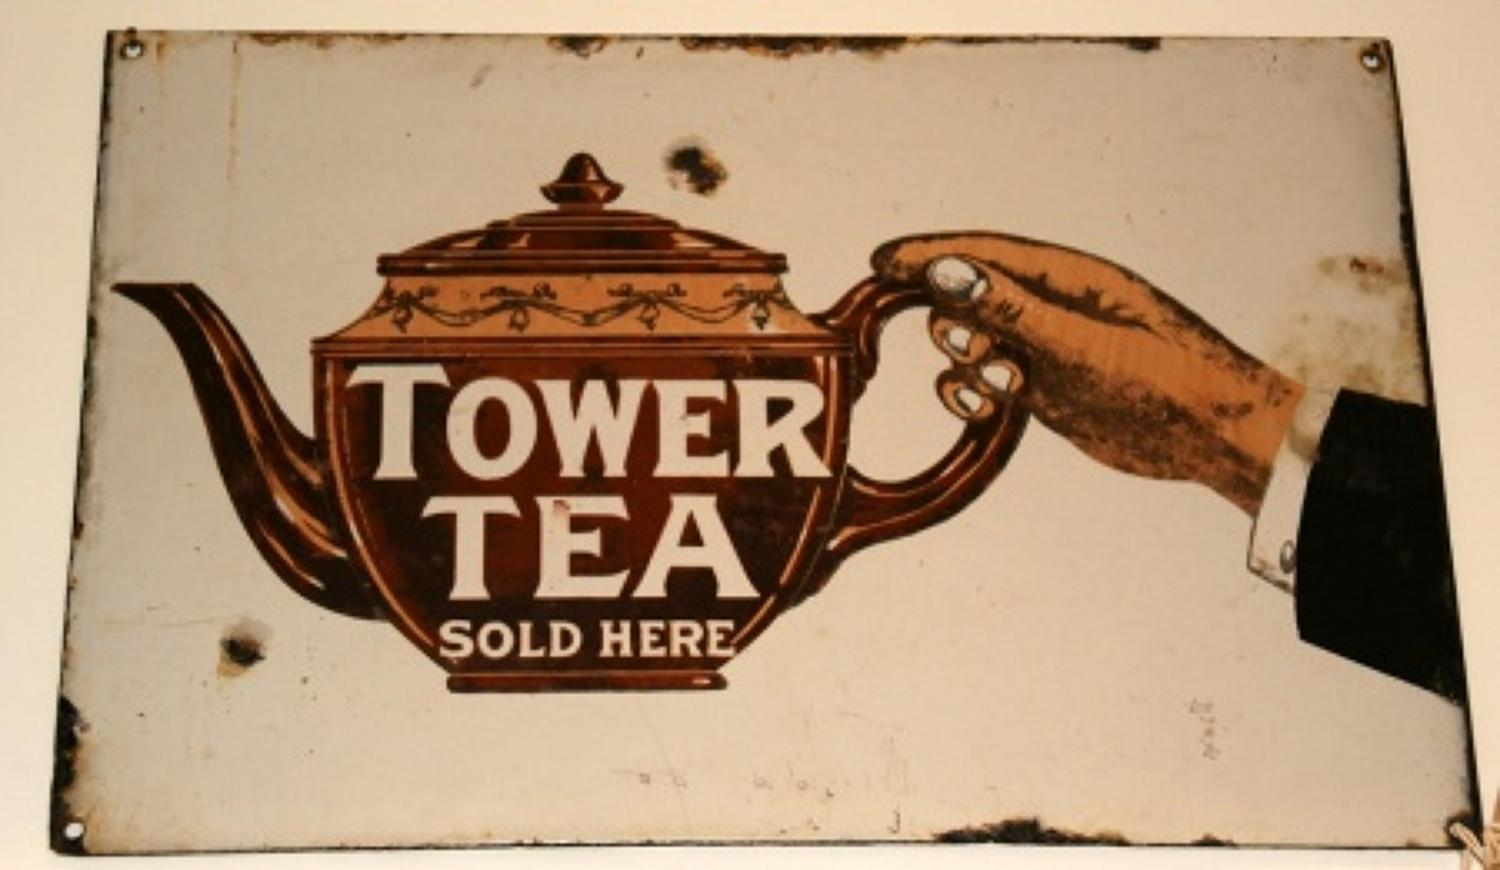 Tower tea advertising enamel sign, early 20th century